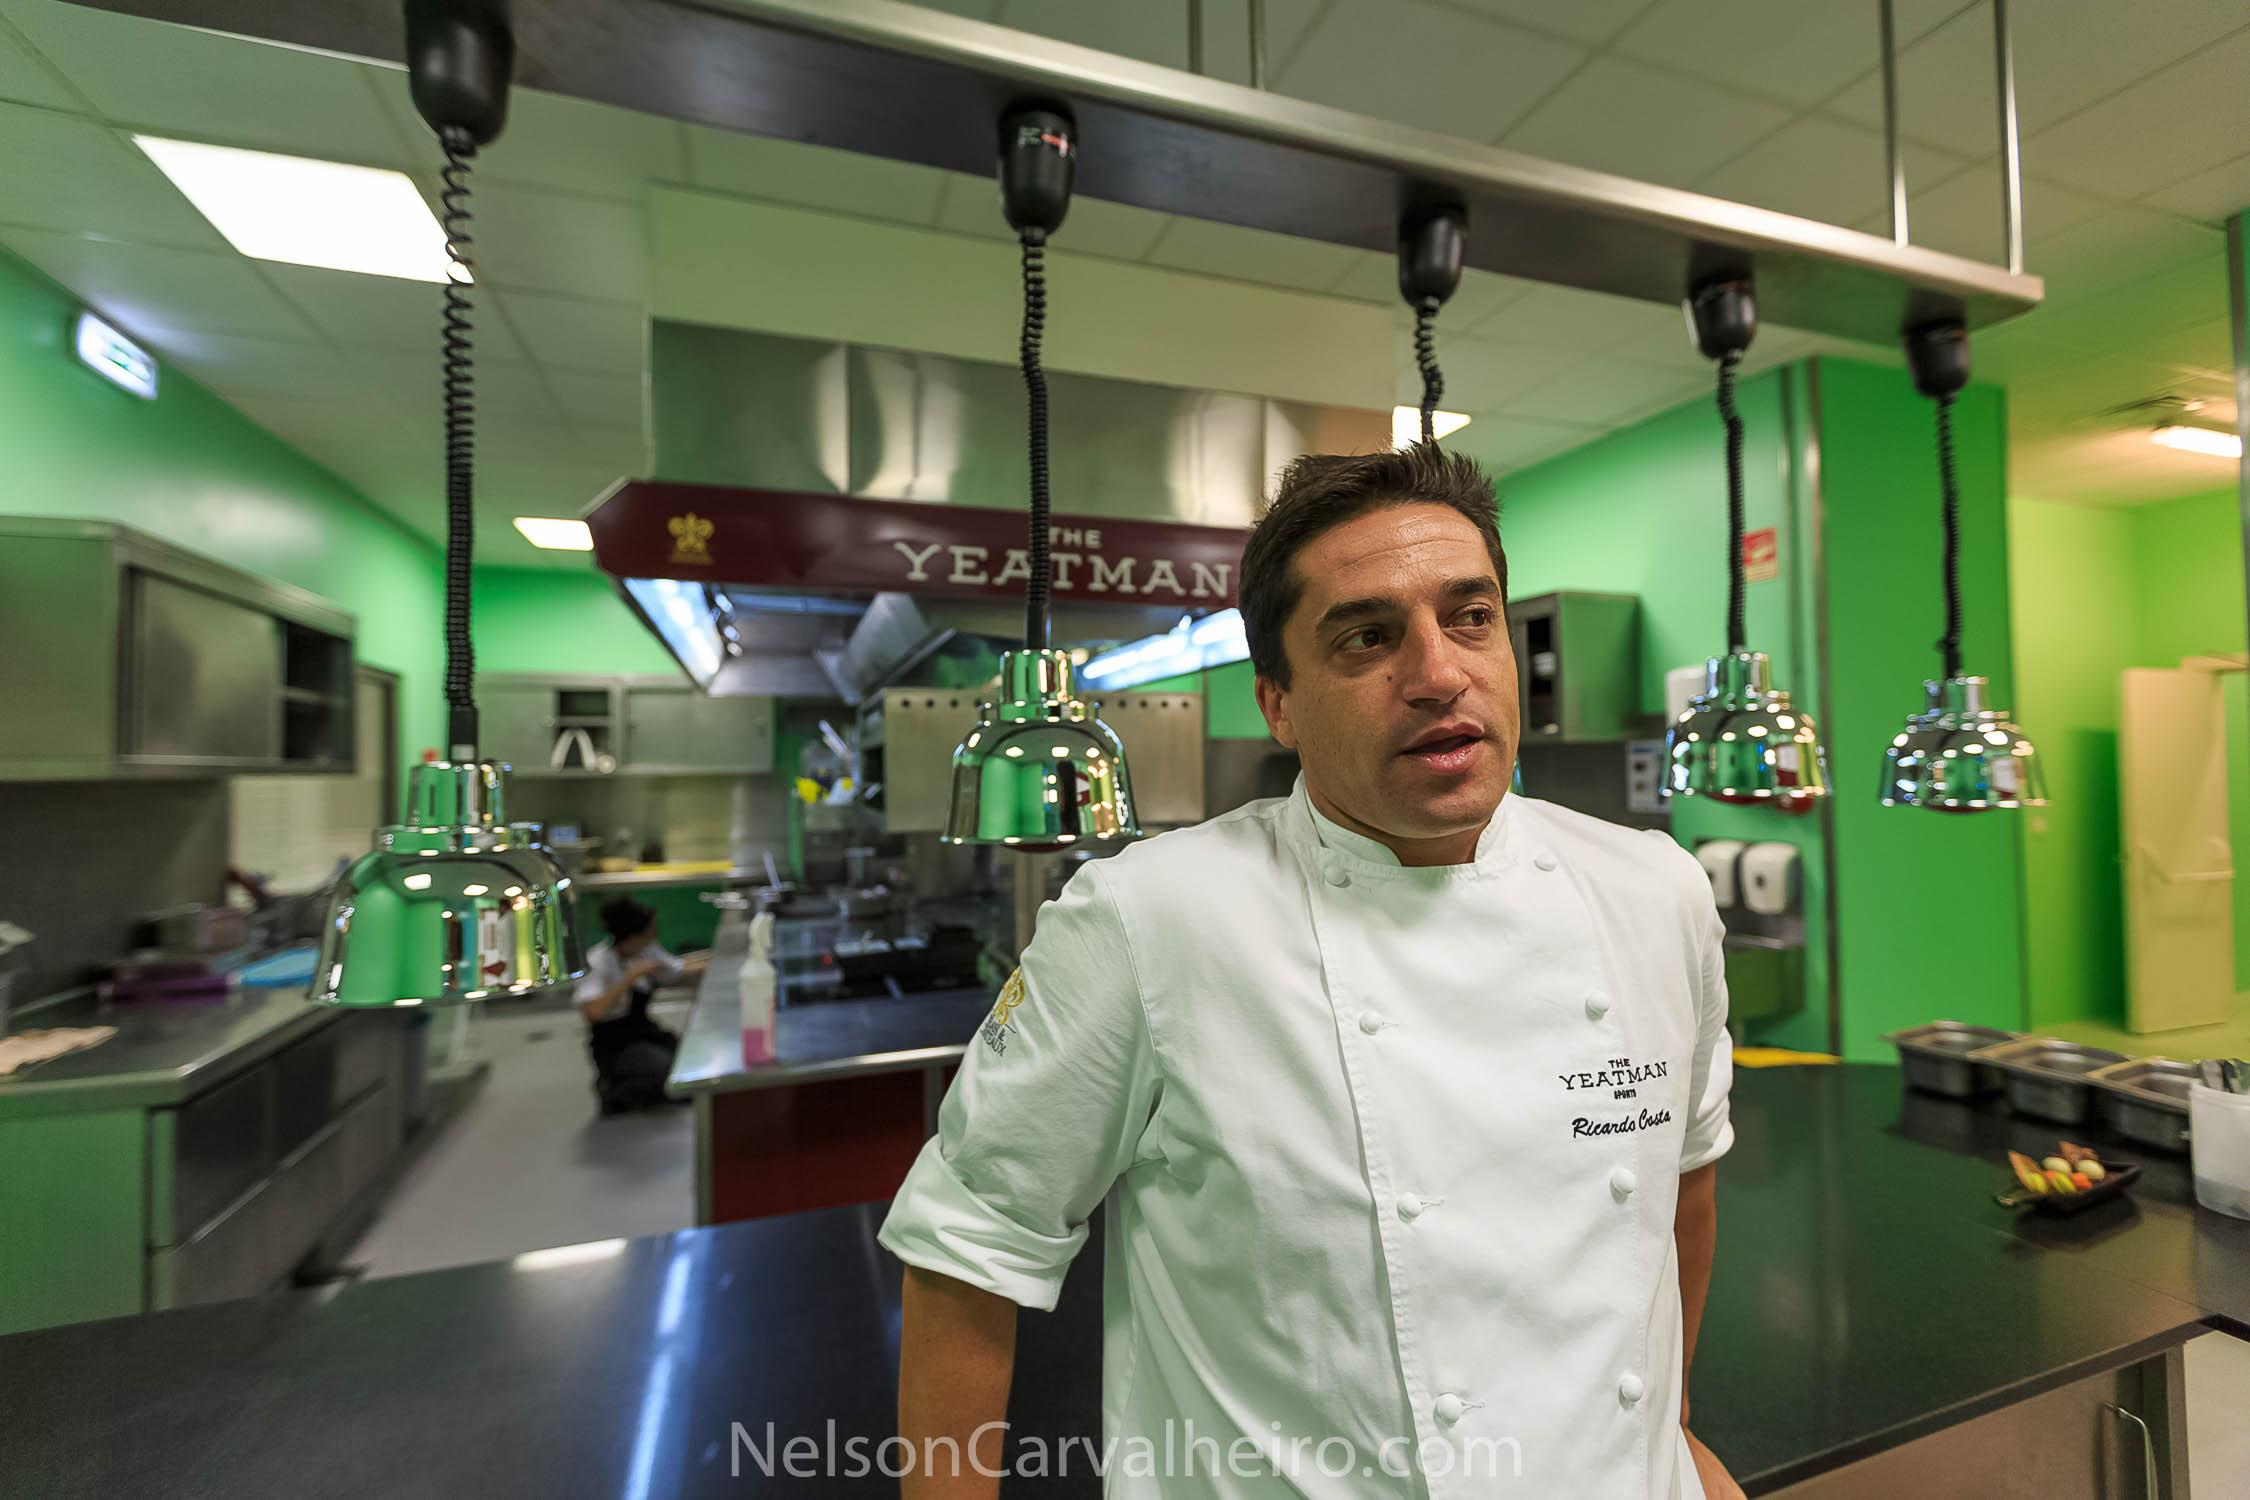 The Yeatman Gastronomic Restaurante - Chef Ricardo Costa